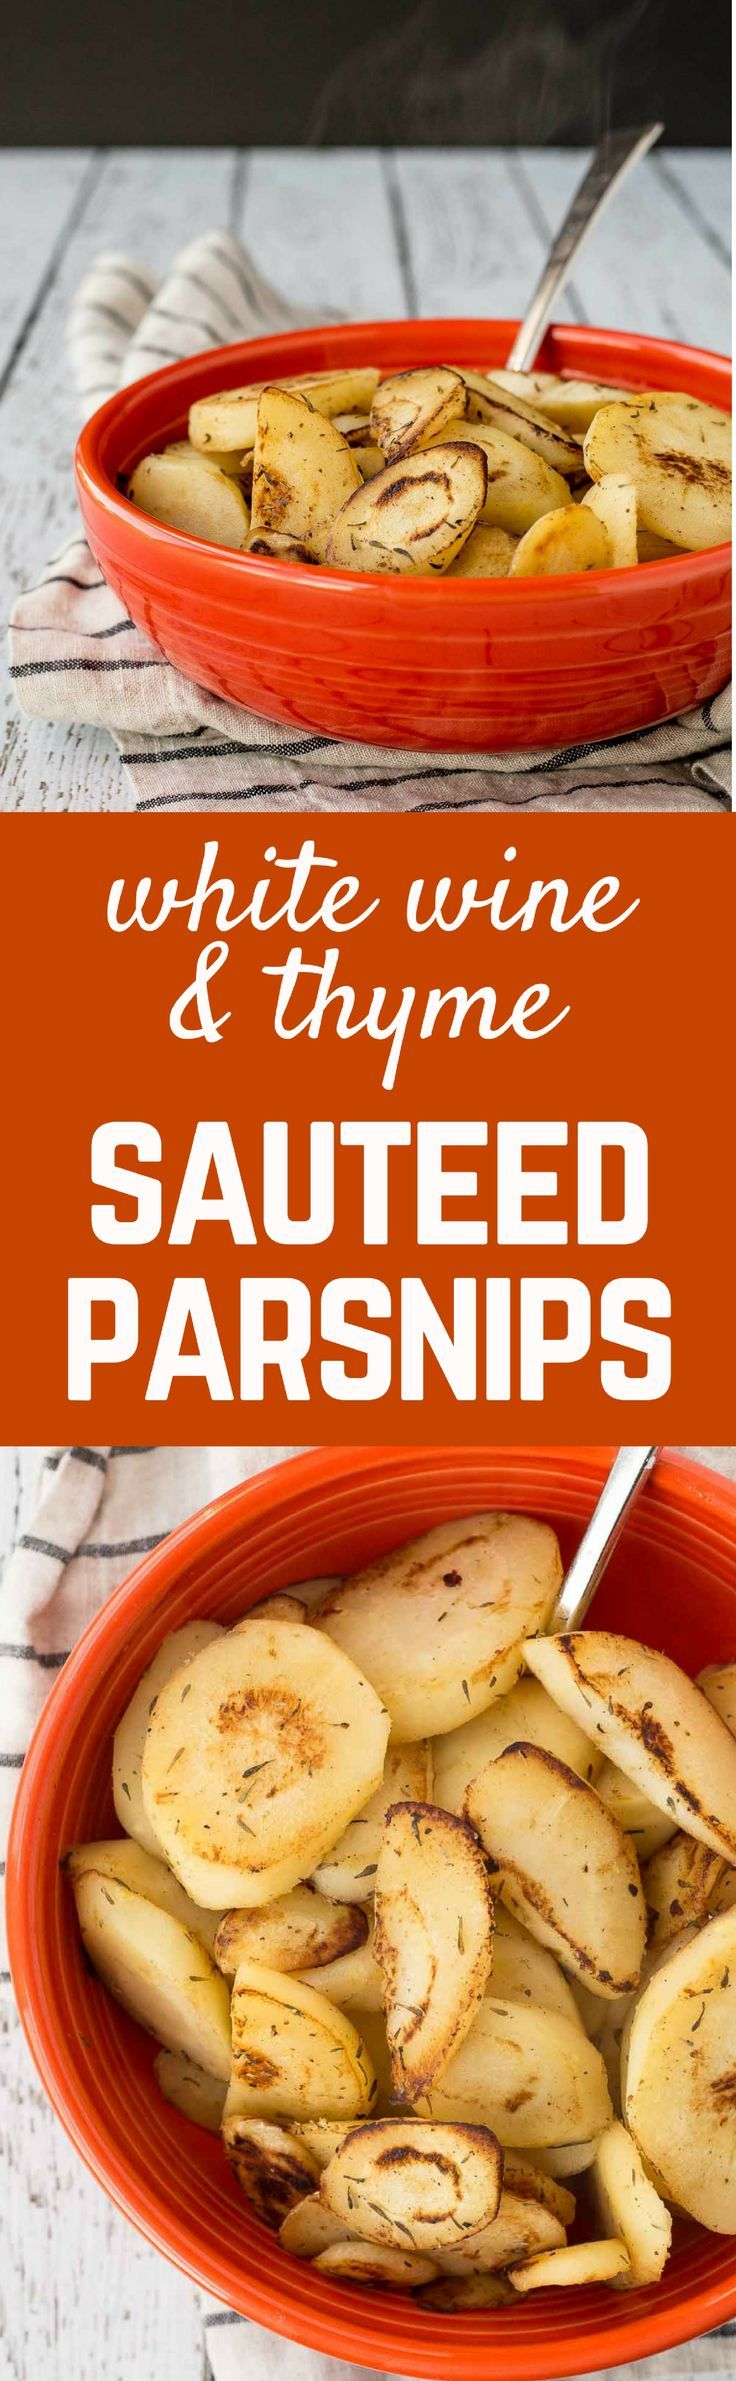 A classy yet stand-out side dish, these sautéed parsnips are flavored with wine, butter, and thyme. They're the perfect addition to any meal - especially Thanksgiving! Get the easy recipe on http://RachelCooks.com!